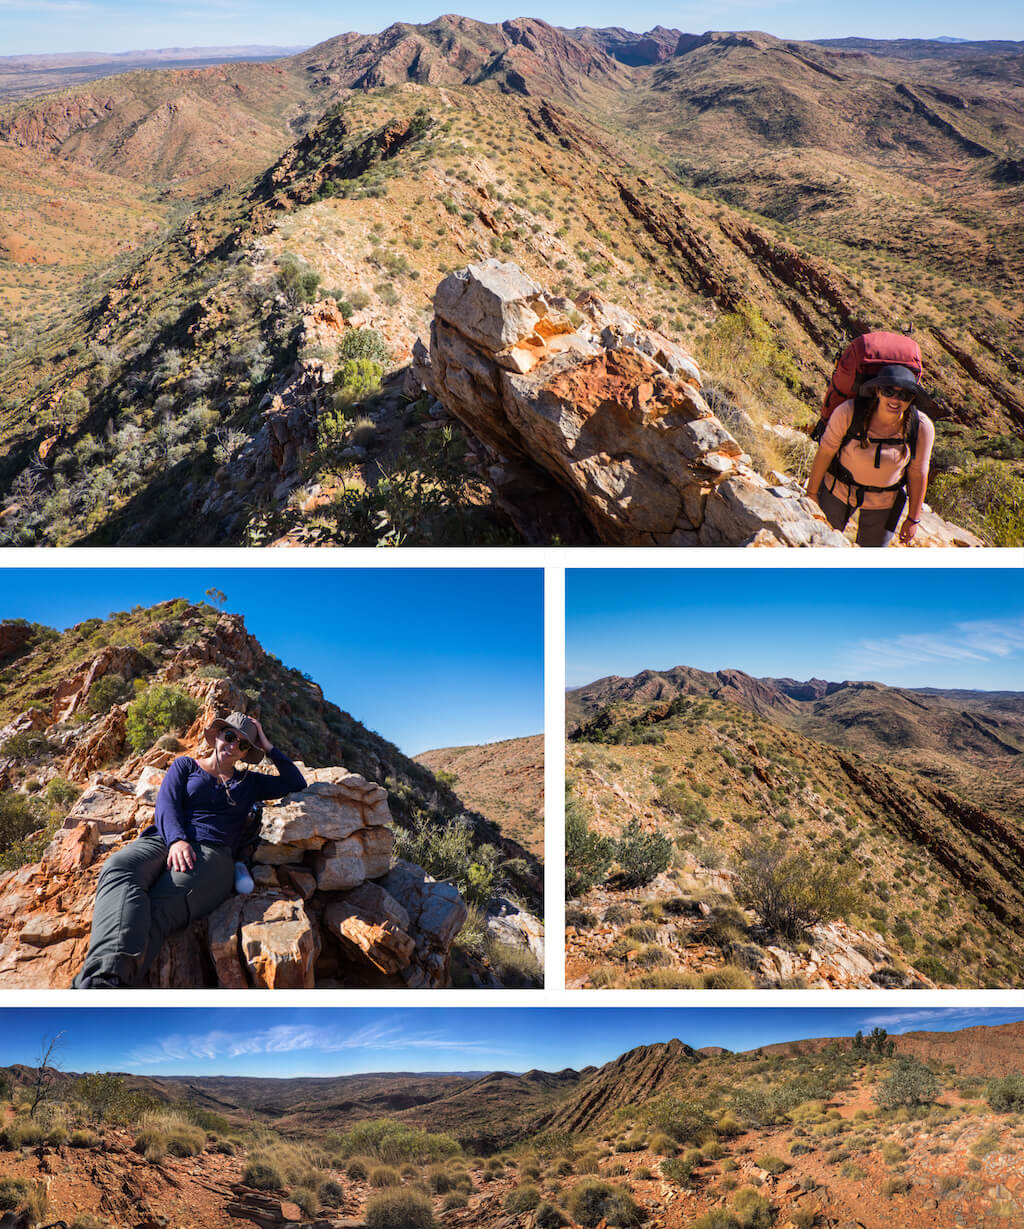 Razorback Ridge - Beautiful photography taken while trekking the Larapinta Trail in Central Australia